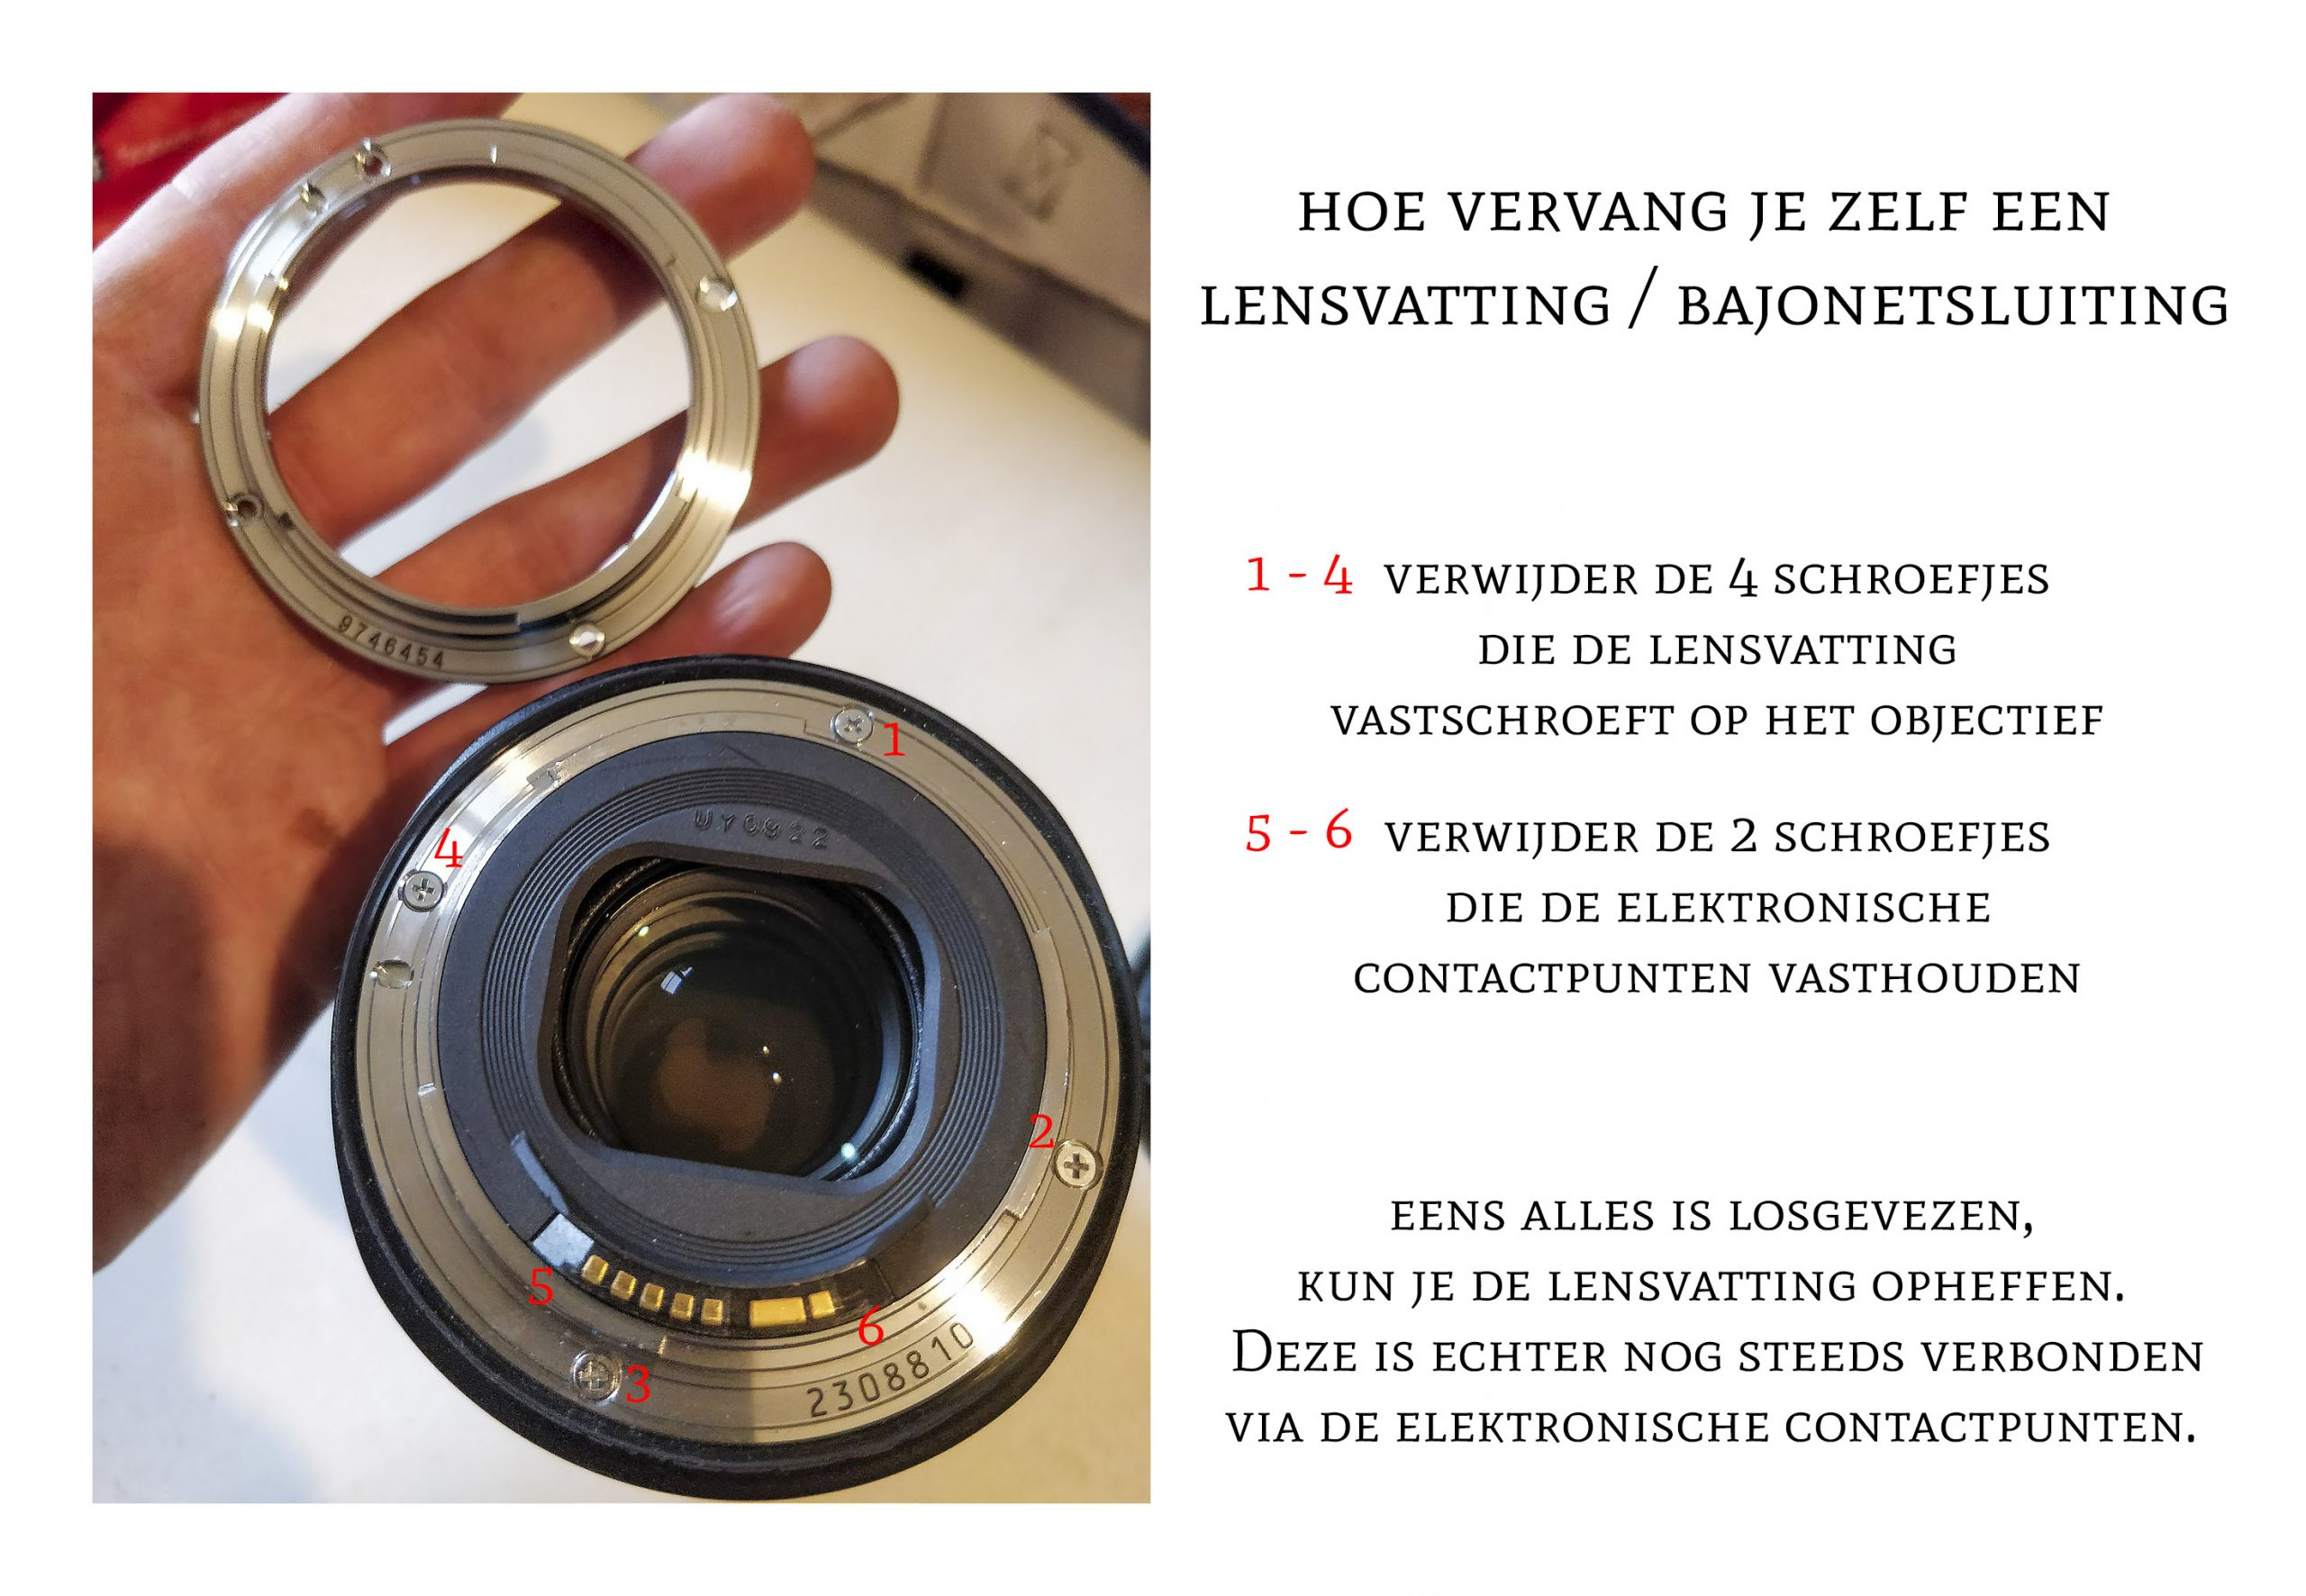 Lens bayonet vatting voor de Canon EF 24-105mm F4L IS USM, Lens Bayonet mount for canon EF 24-105mm F4L IS USM